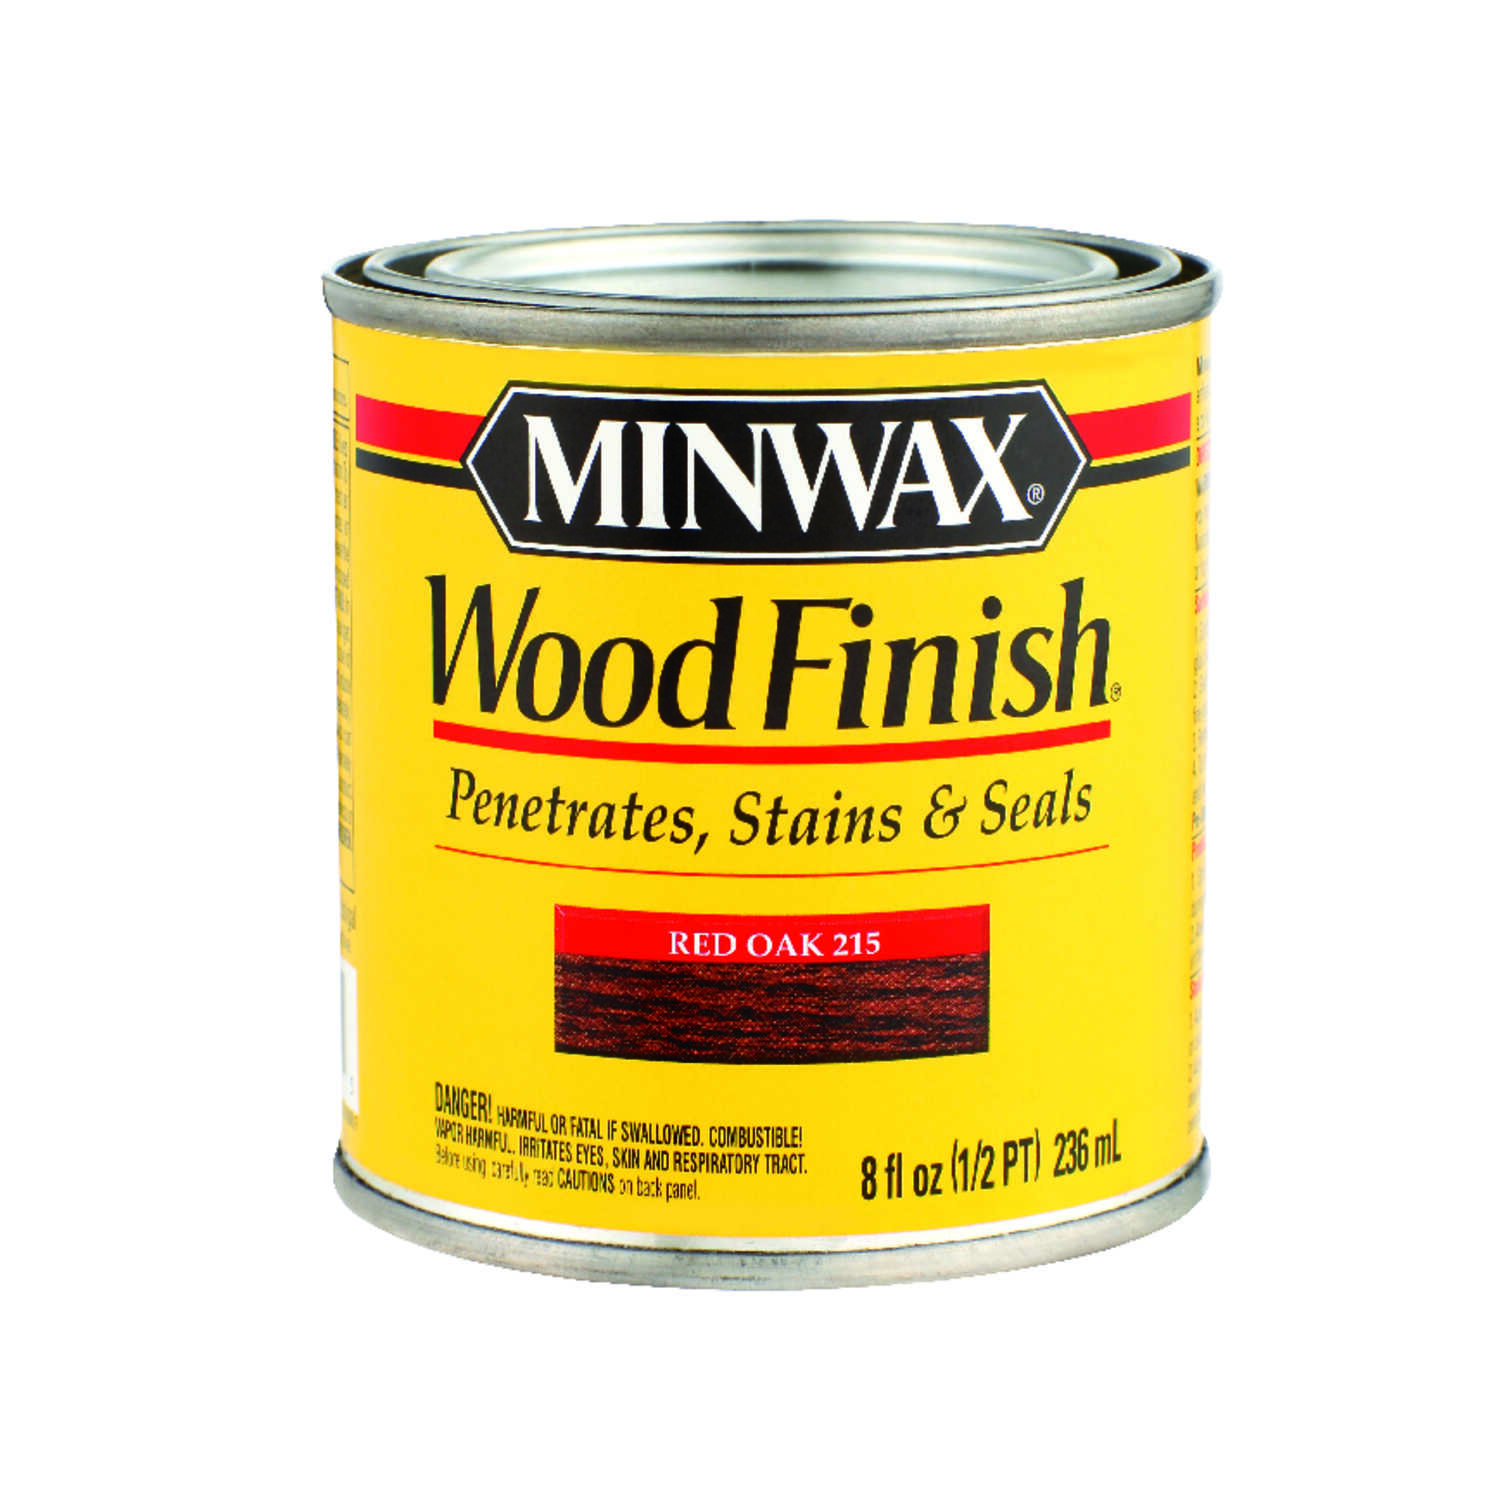 Minwax  Wood Finish  Semi-Transparent  Red Oak  Oil-Based  Wood Stain  1/2 pt.